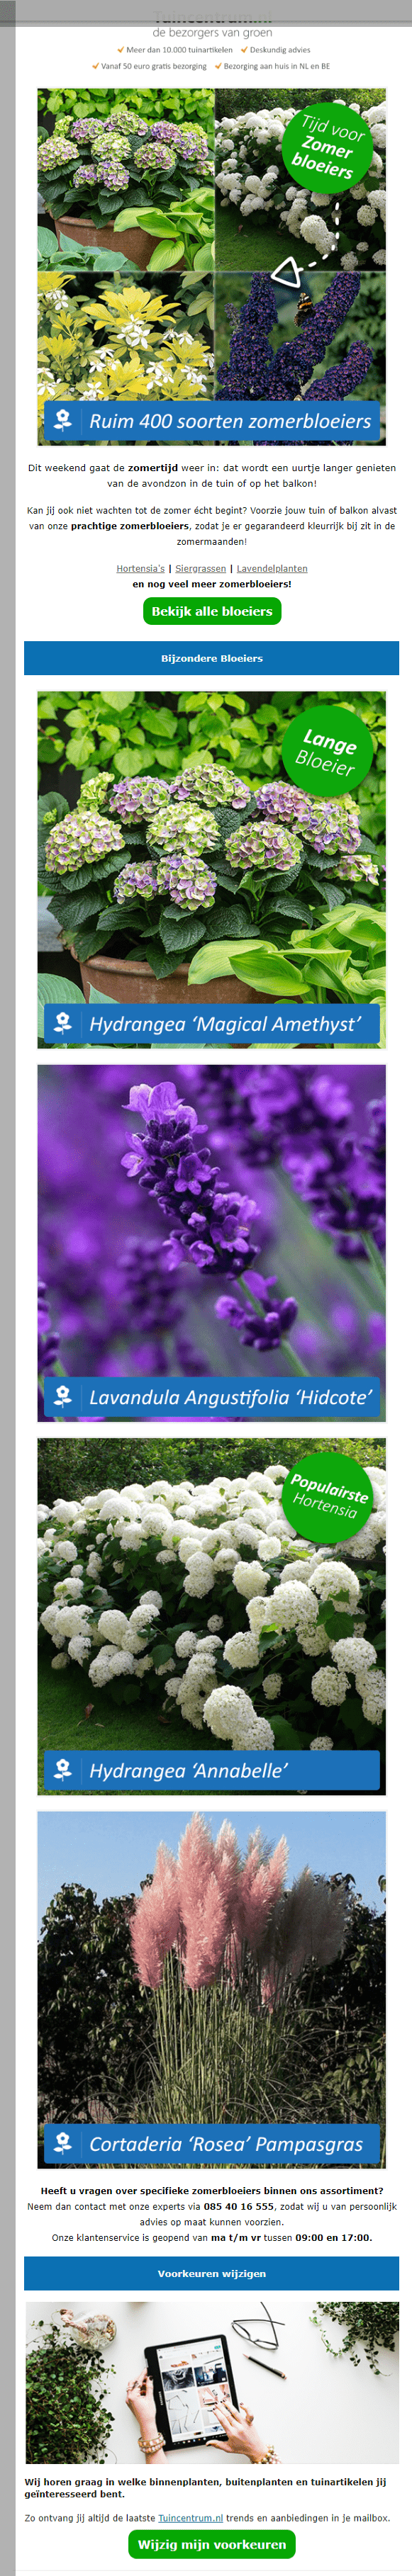 Image of a newsletter with flowers